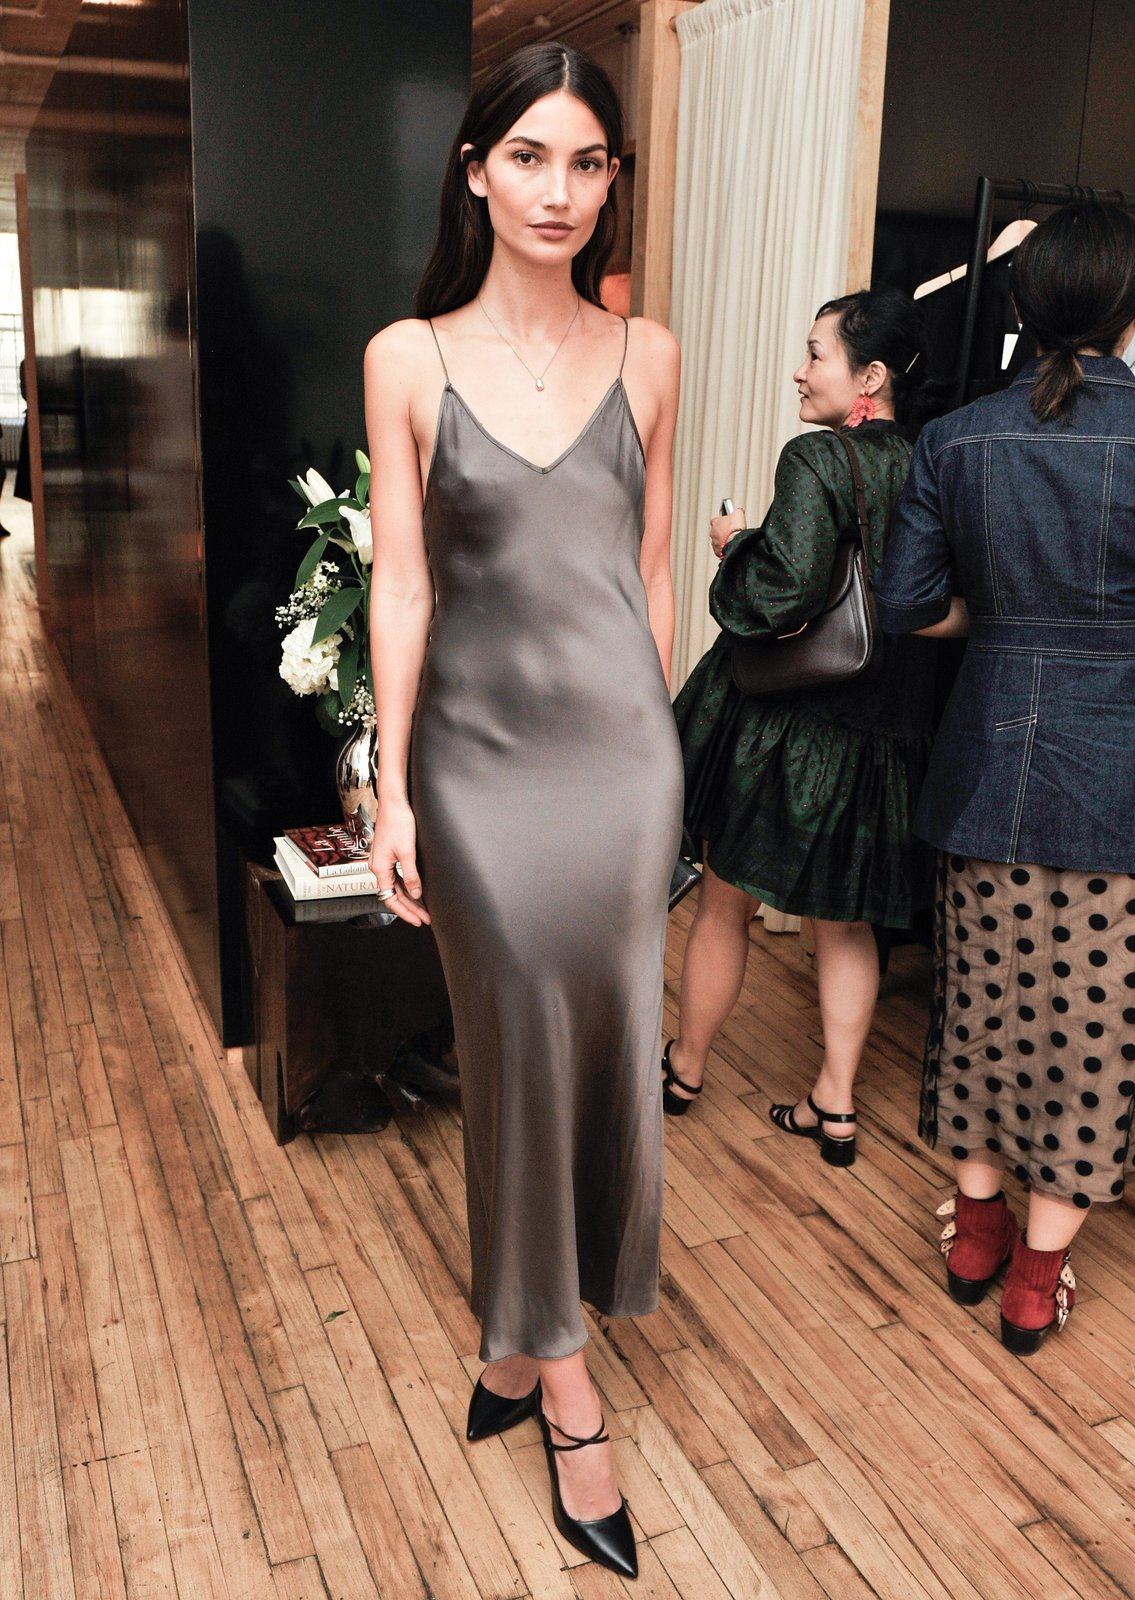 lily aldridge, girl, beautiful, grey satin floor length, spaghetti straps, ootd, ootn, outfit, party